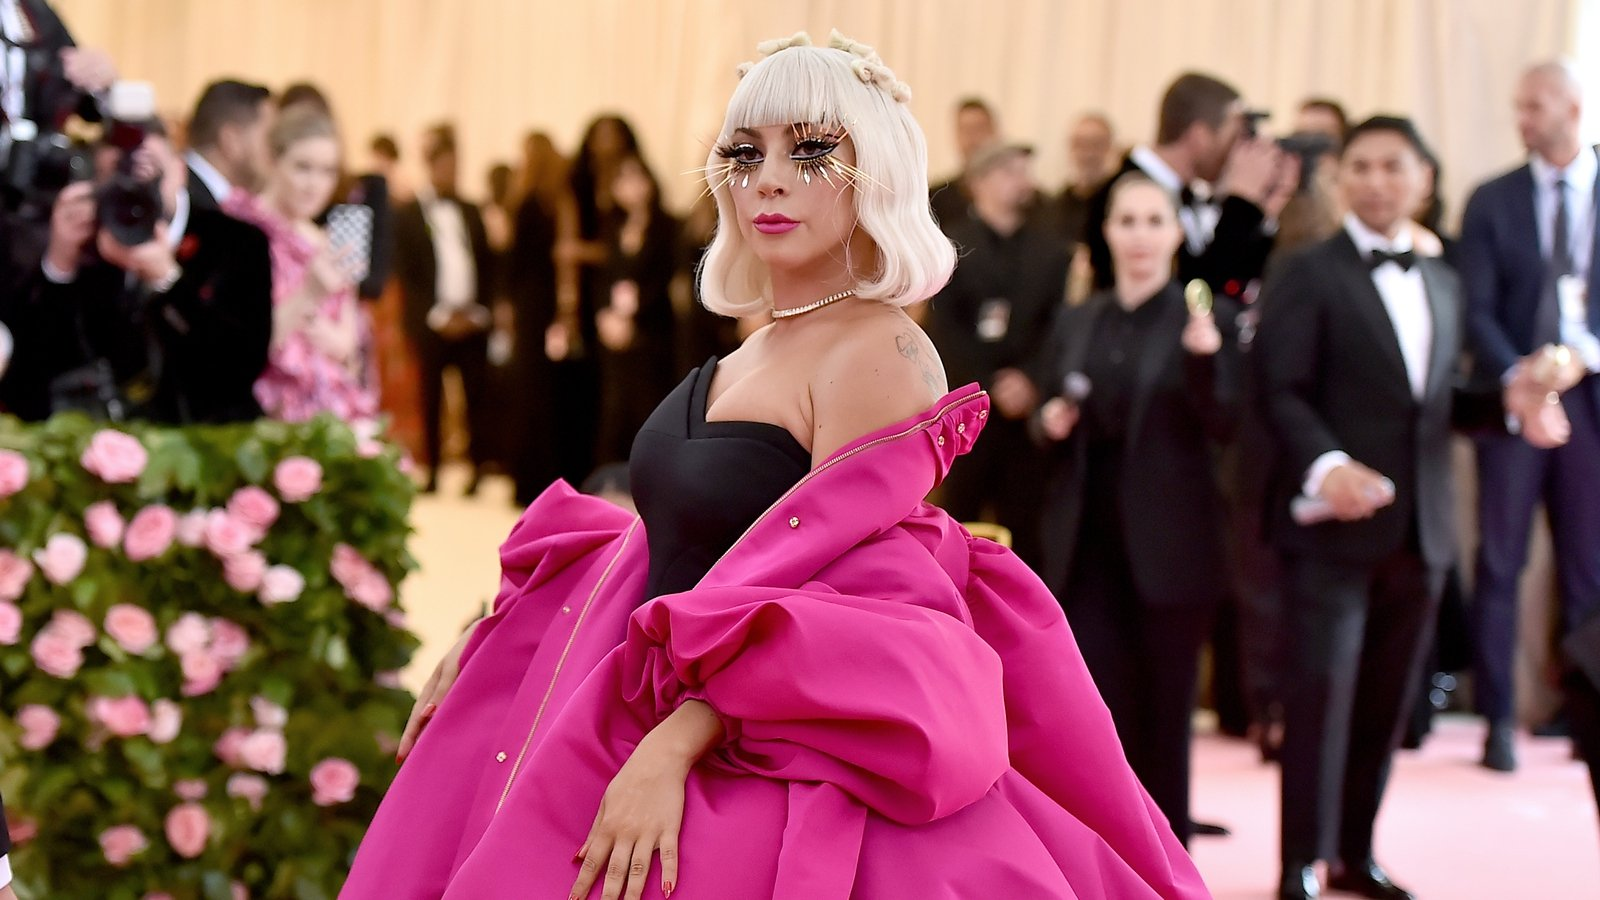 Met Gala 2019 Red Carpet All The Celebrity Dresses And Looks